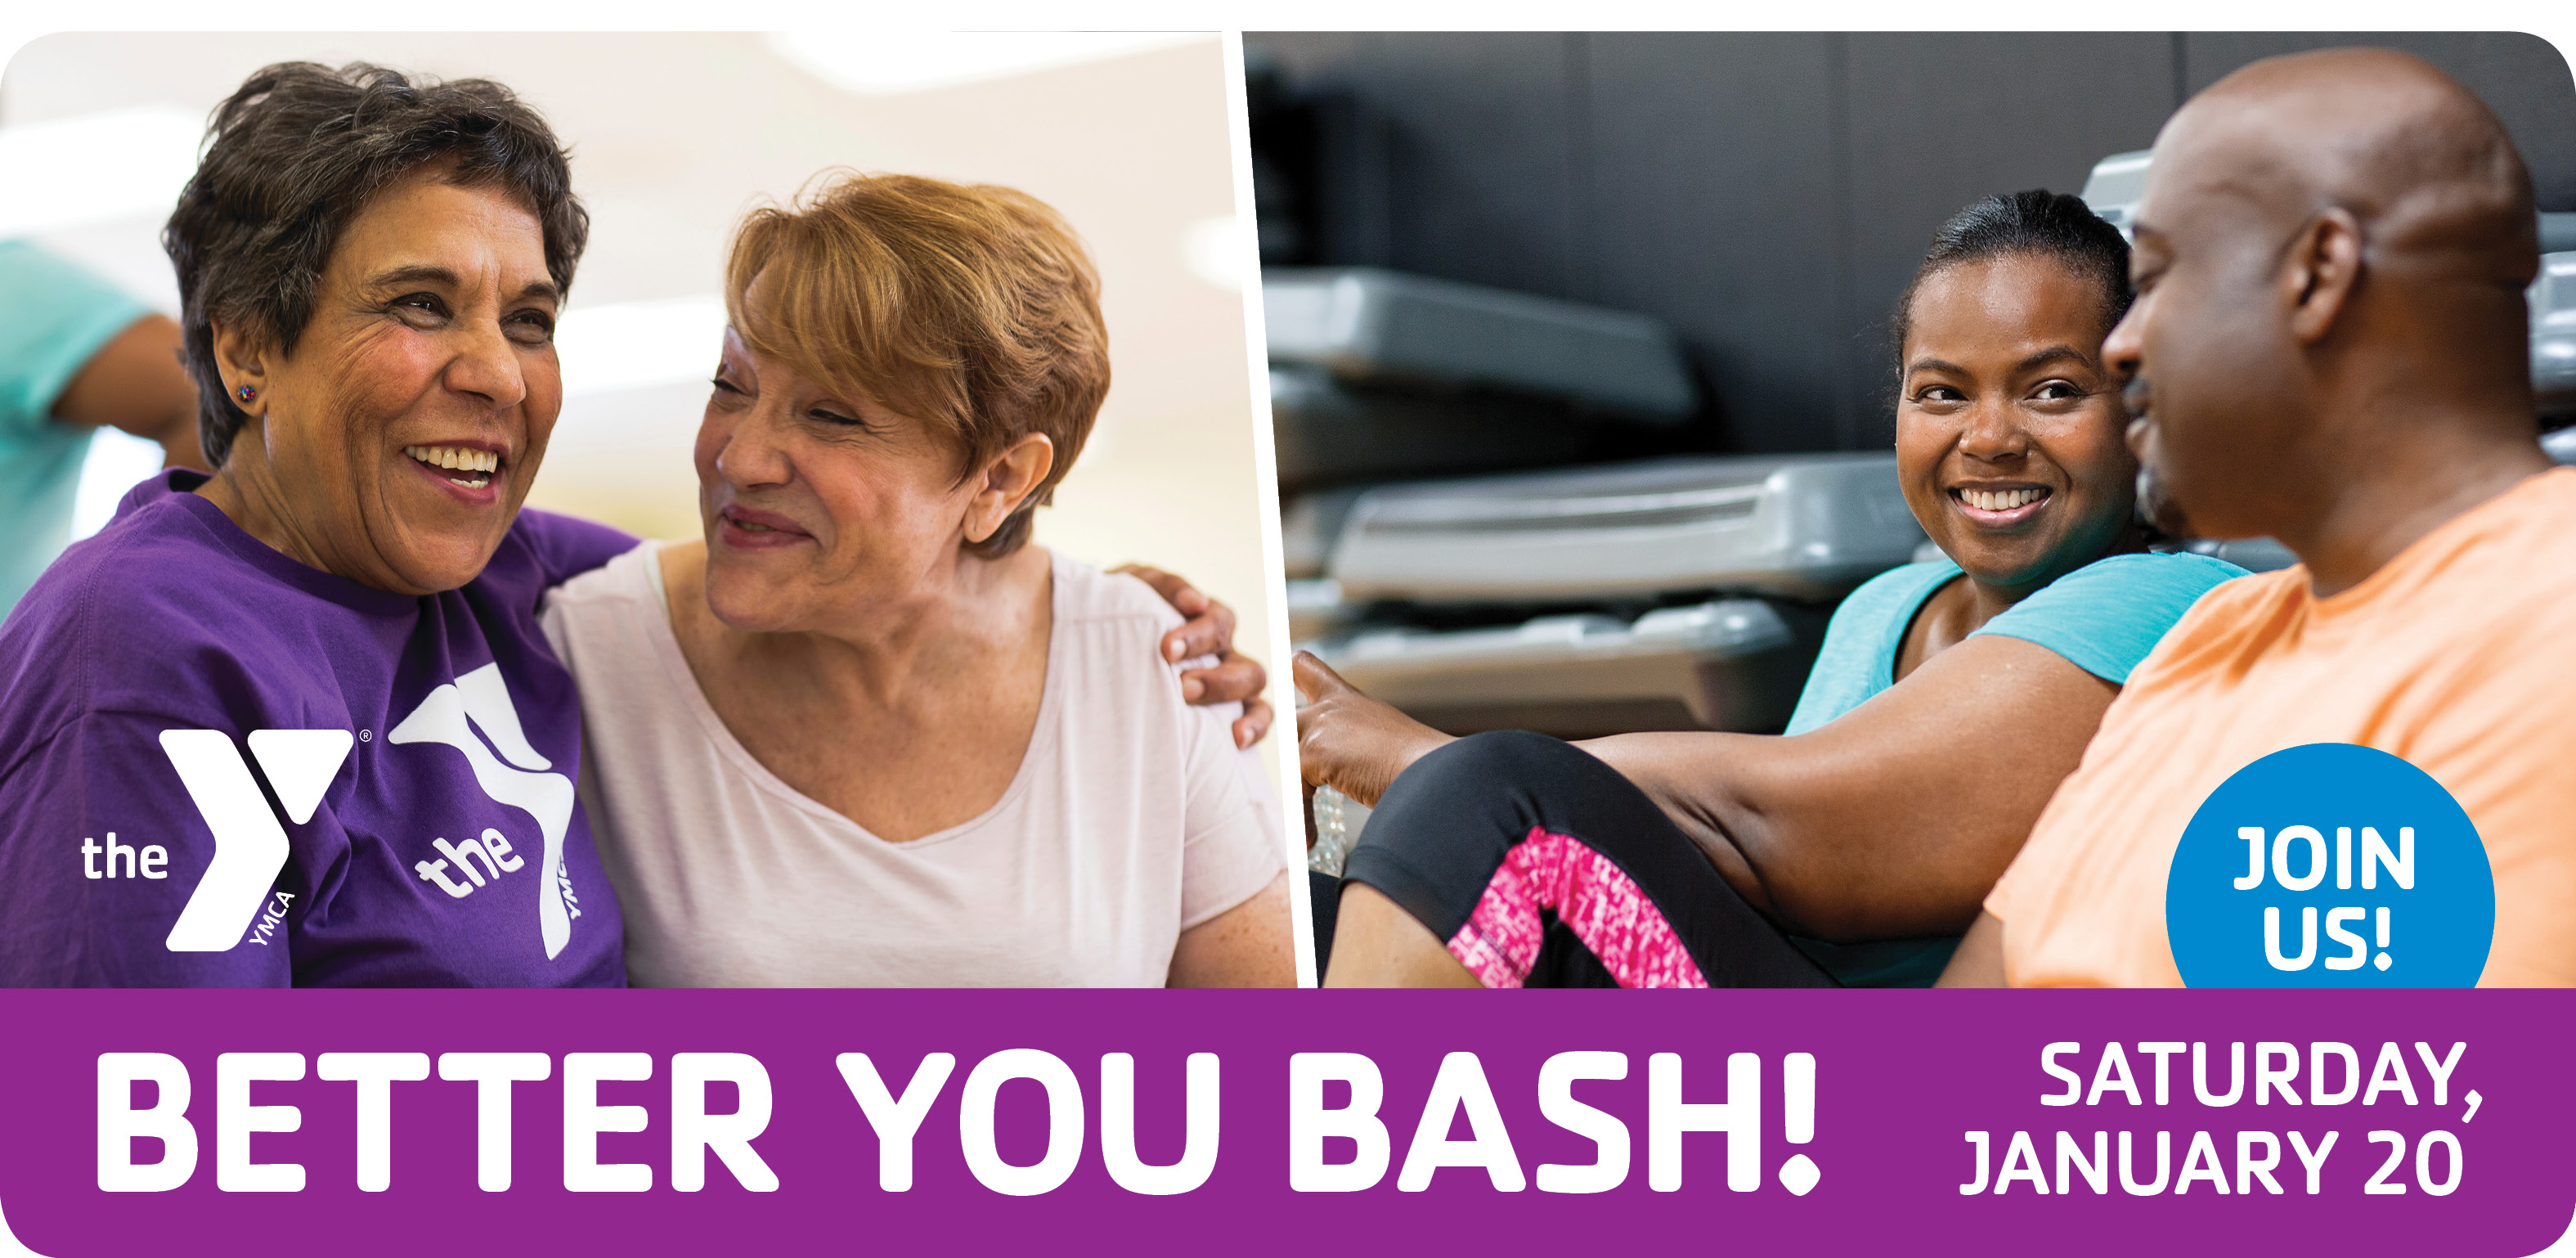 The Better You Bash!